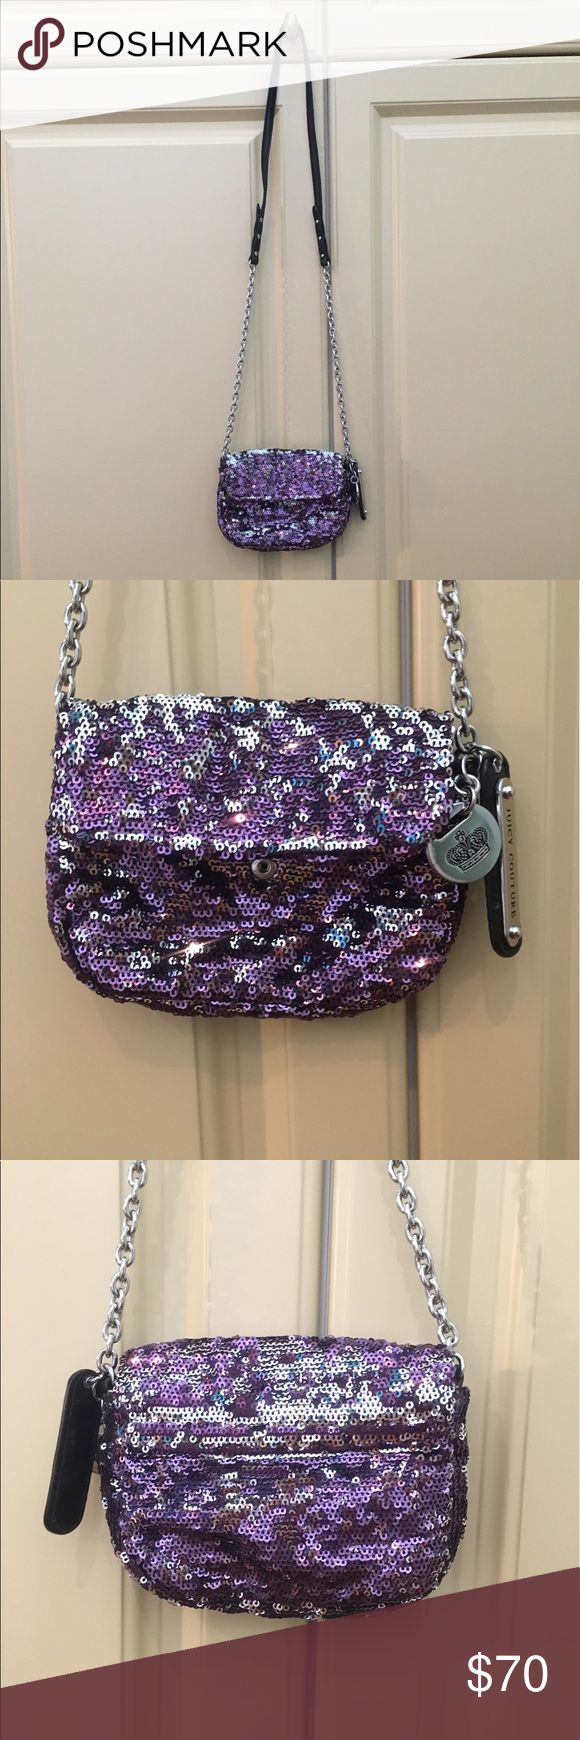 Sparkly purple juicy couture purse Perfect bag to complete any outfit!! Almost perfect condition! Juicy Couture Bags Crossbody Bags